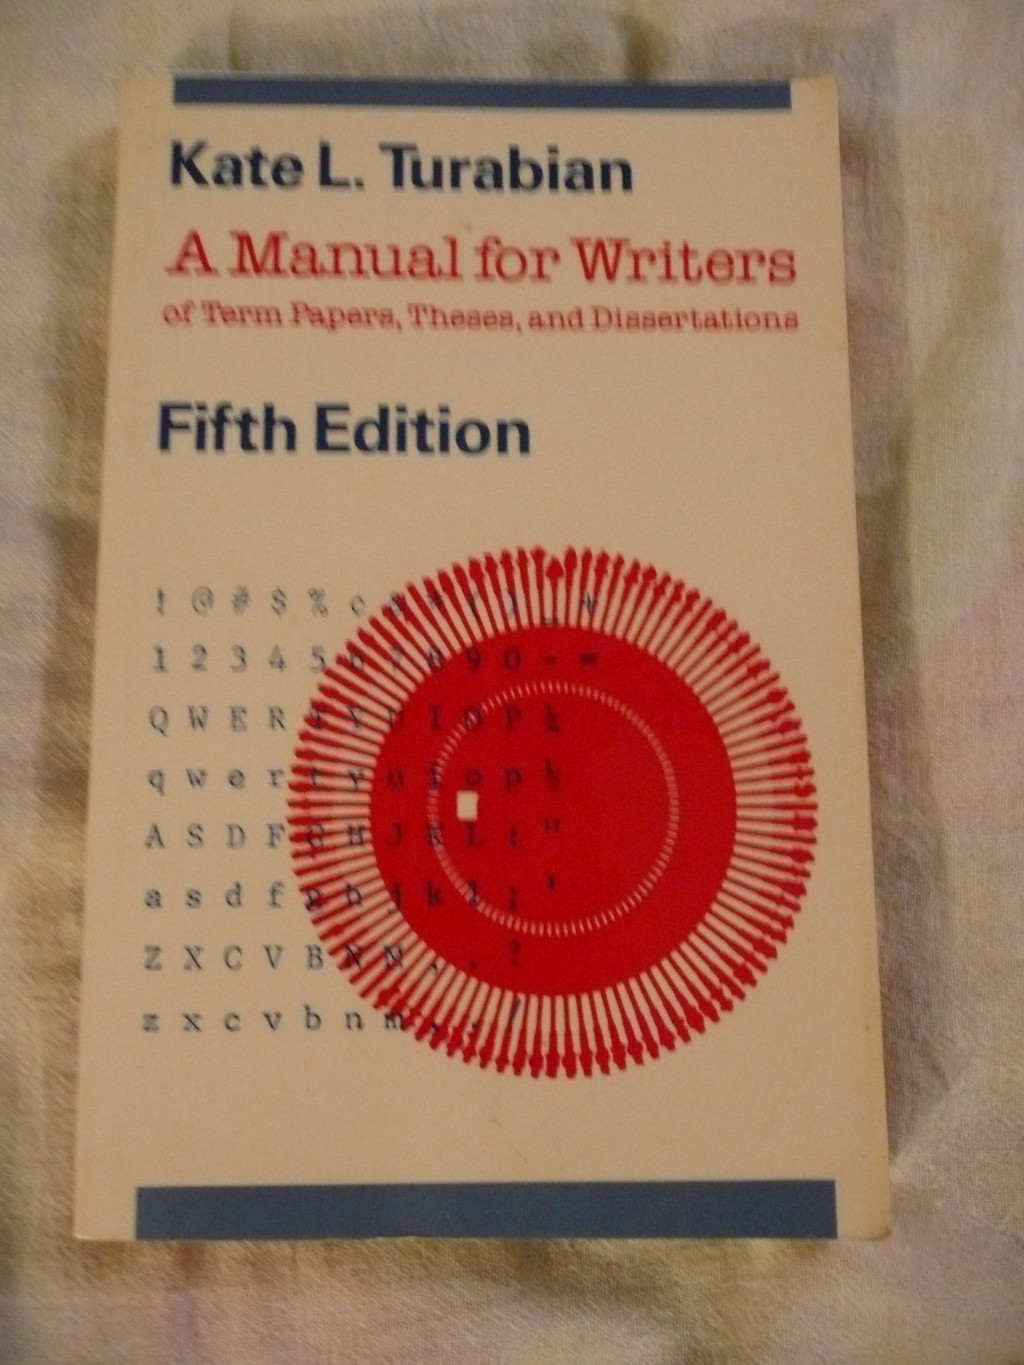 014 Research Paper Manual For Writers Of Papers Theses And Dissertations Magnificent A 8th Ed Pdf Large